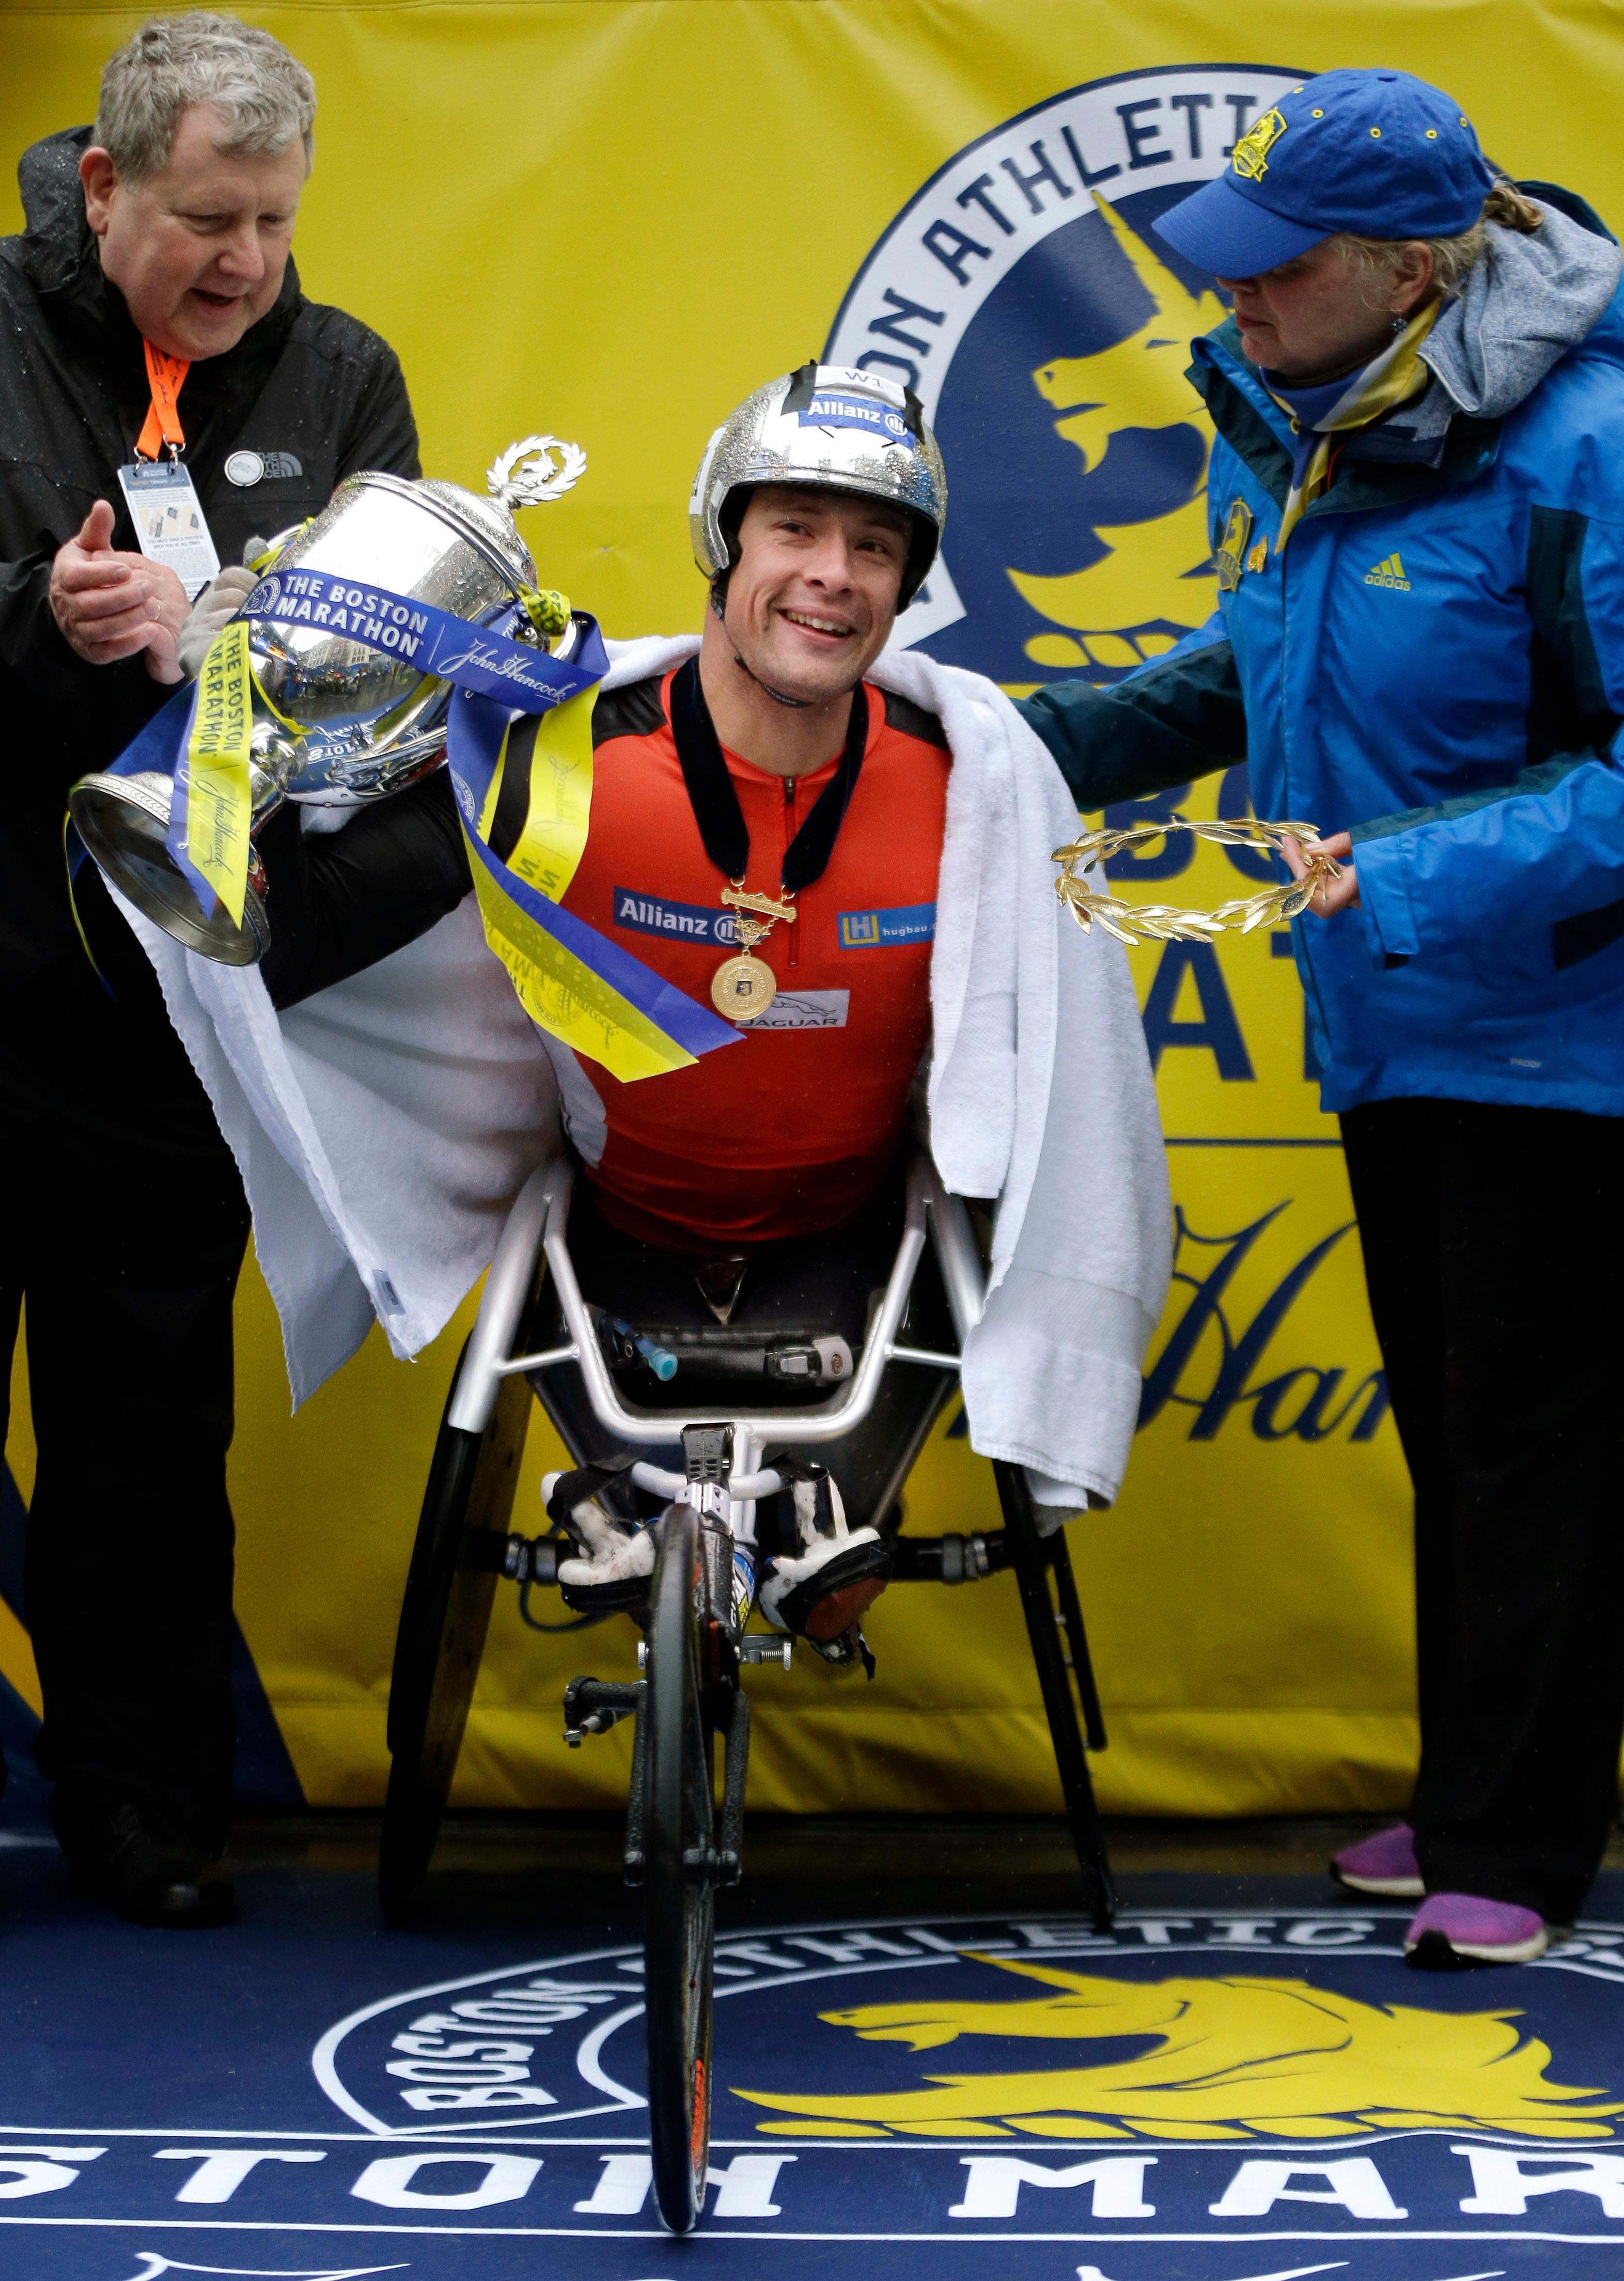 Marcel Hug, of Switzerland, lifts the trophy after winning the men's wheelchair division of the 122nd Boston Marathon on Monday, April 16, 2018, in Boston. (AP Photo/Elise Amendola)